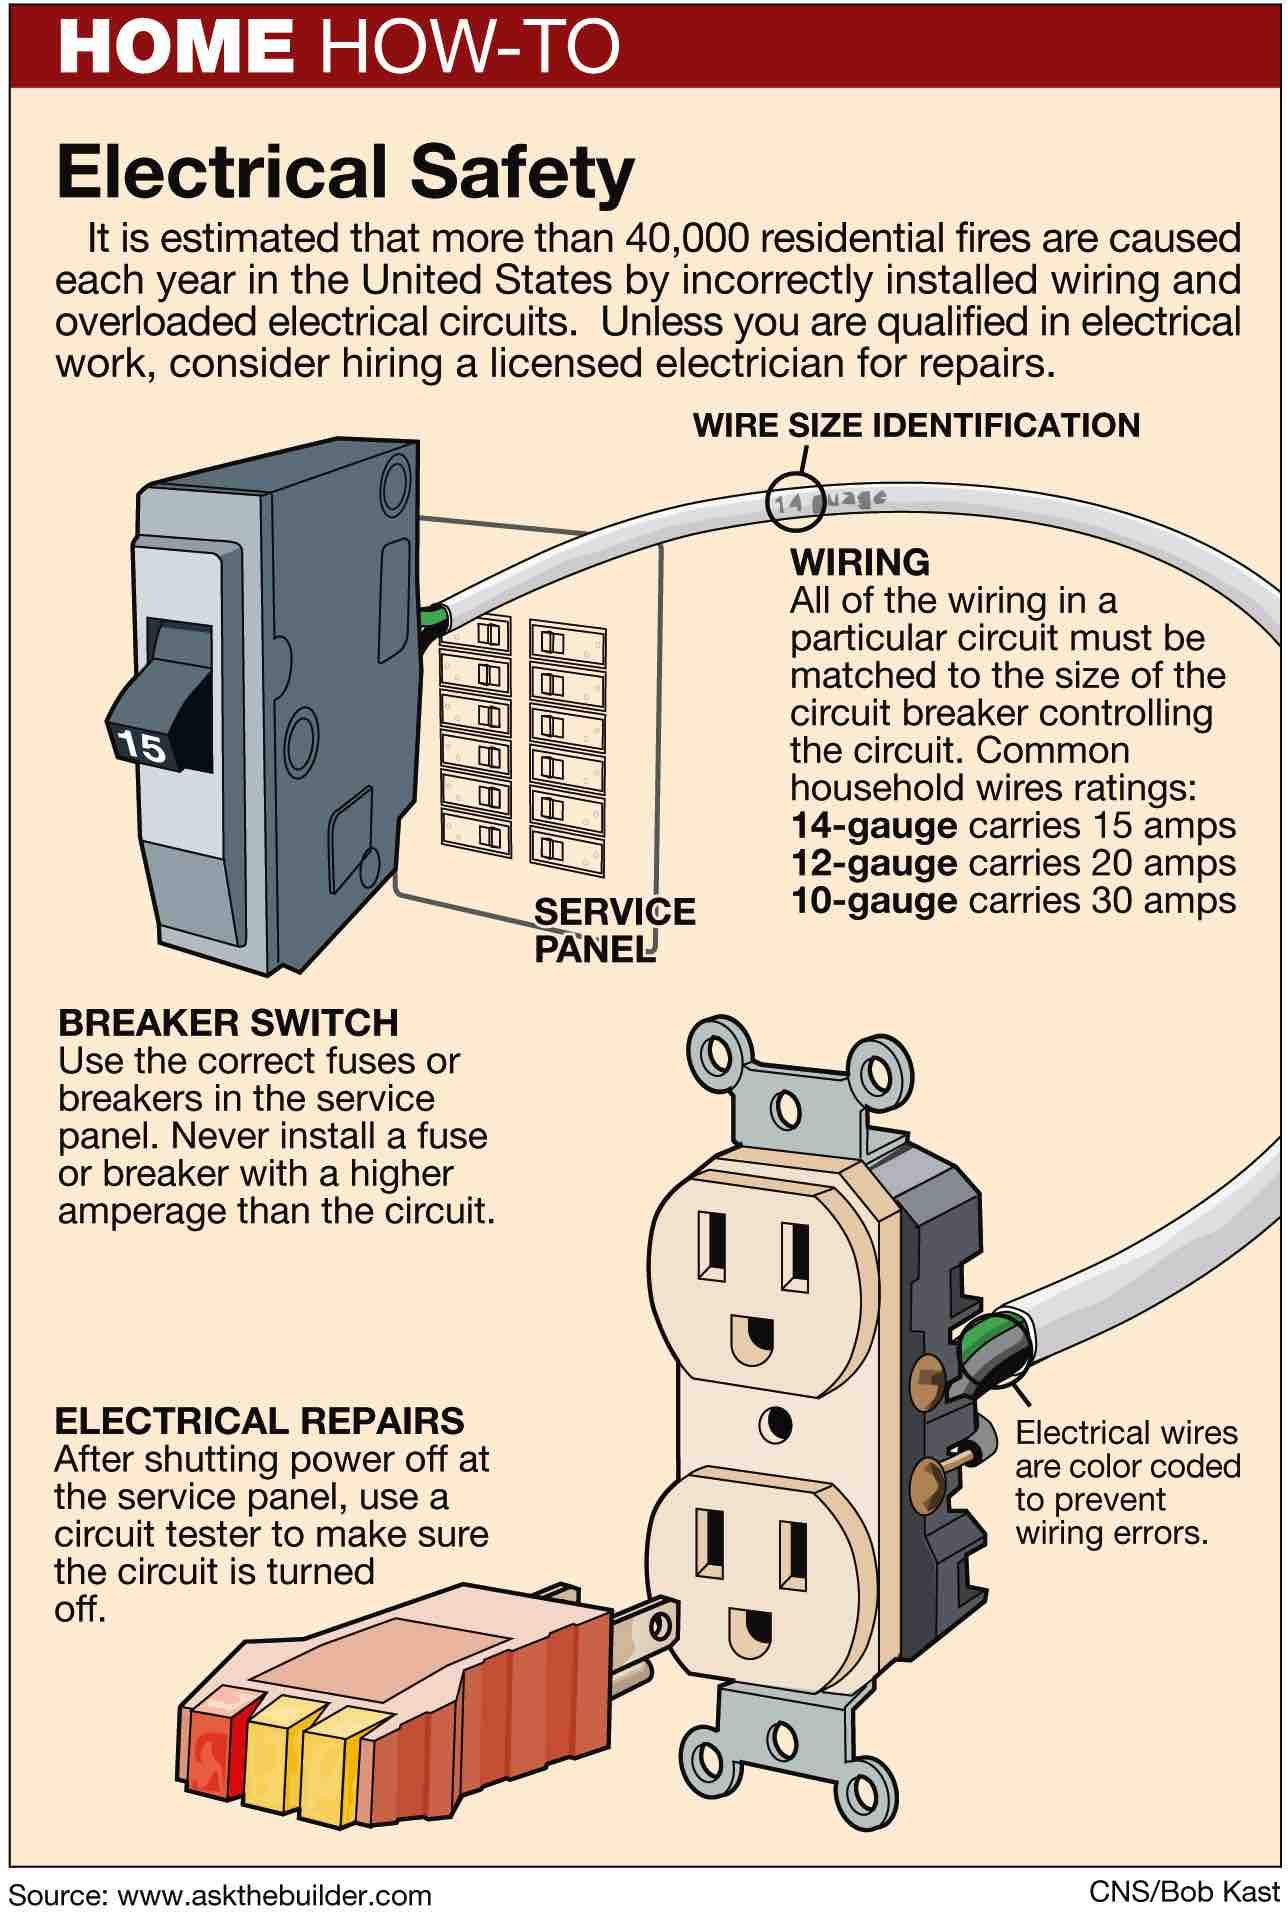 Fuses And Circuit Breakers Can Protect Your Home From Electric Shock Fused Residential Diagram Check Out How At Https